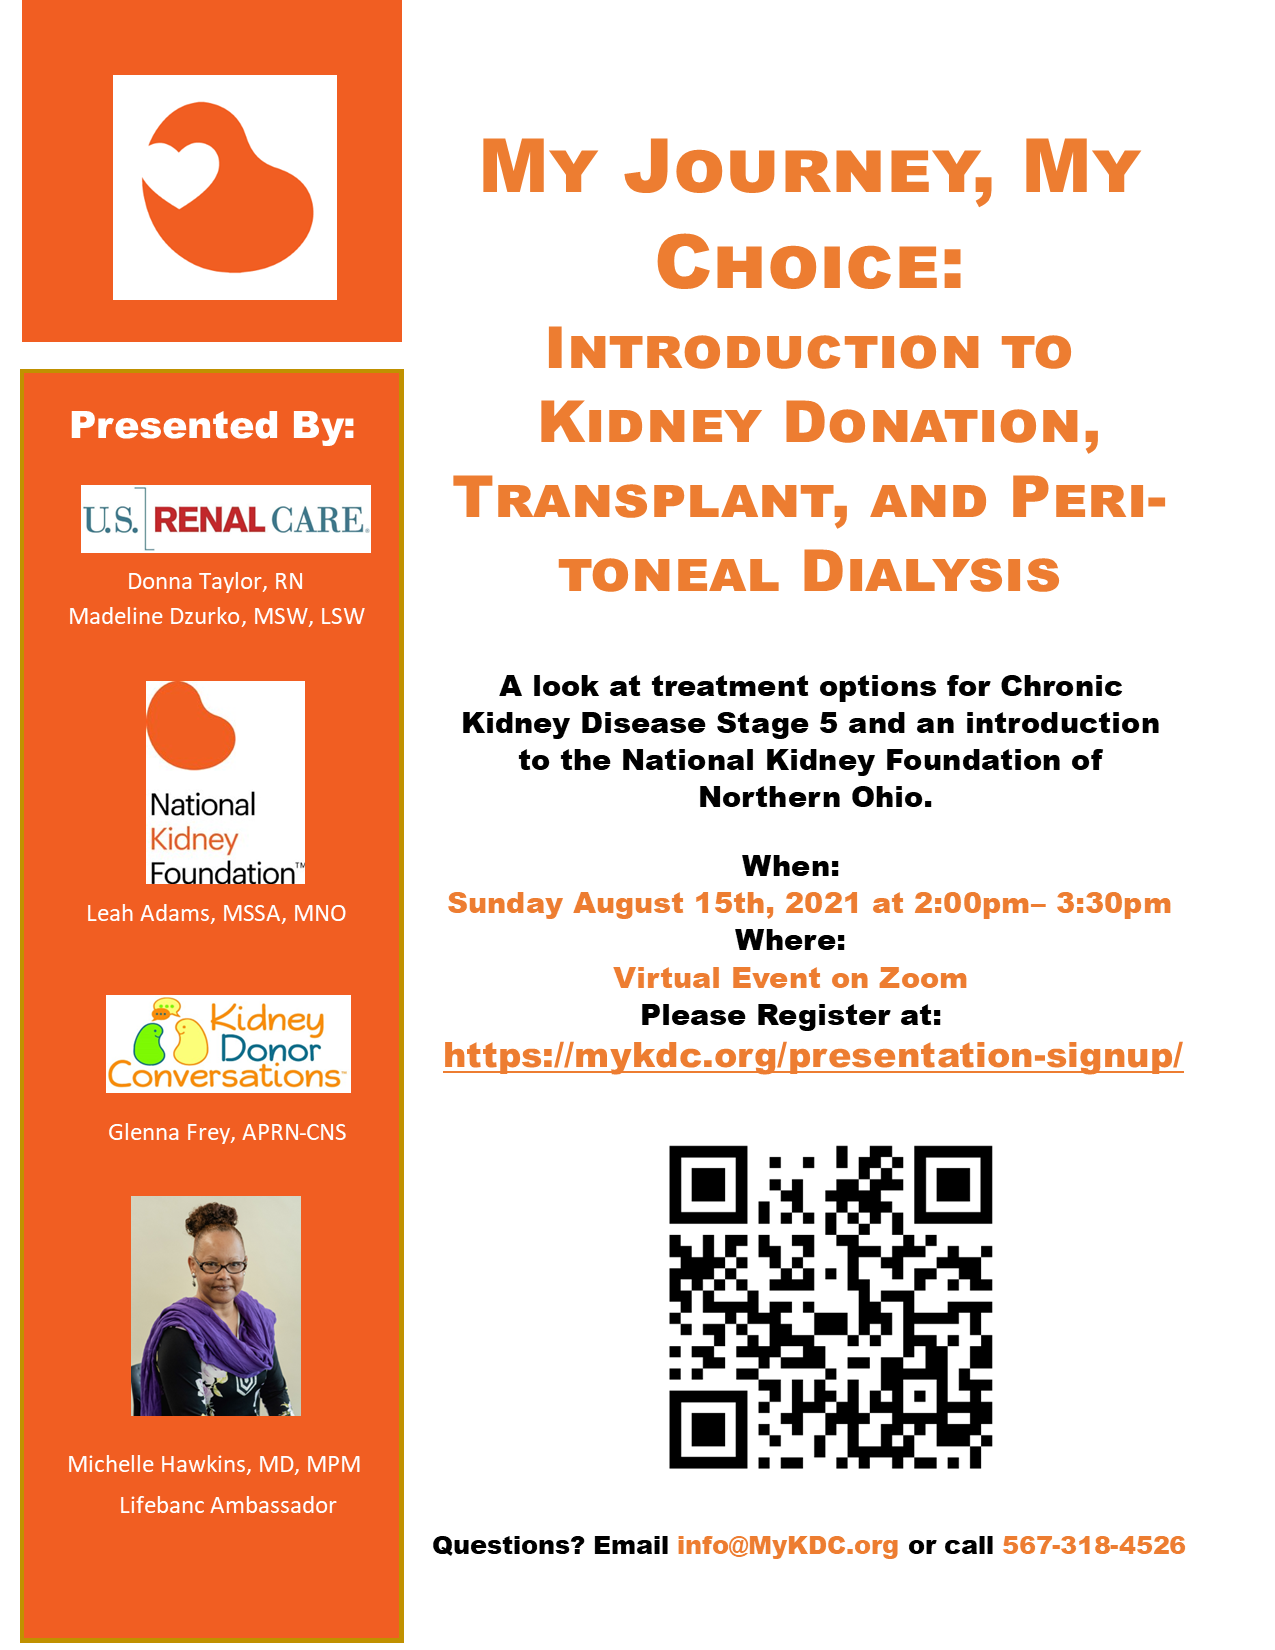 Kidney Disease options of peritoneal dialysis and living kidney transplant